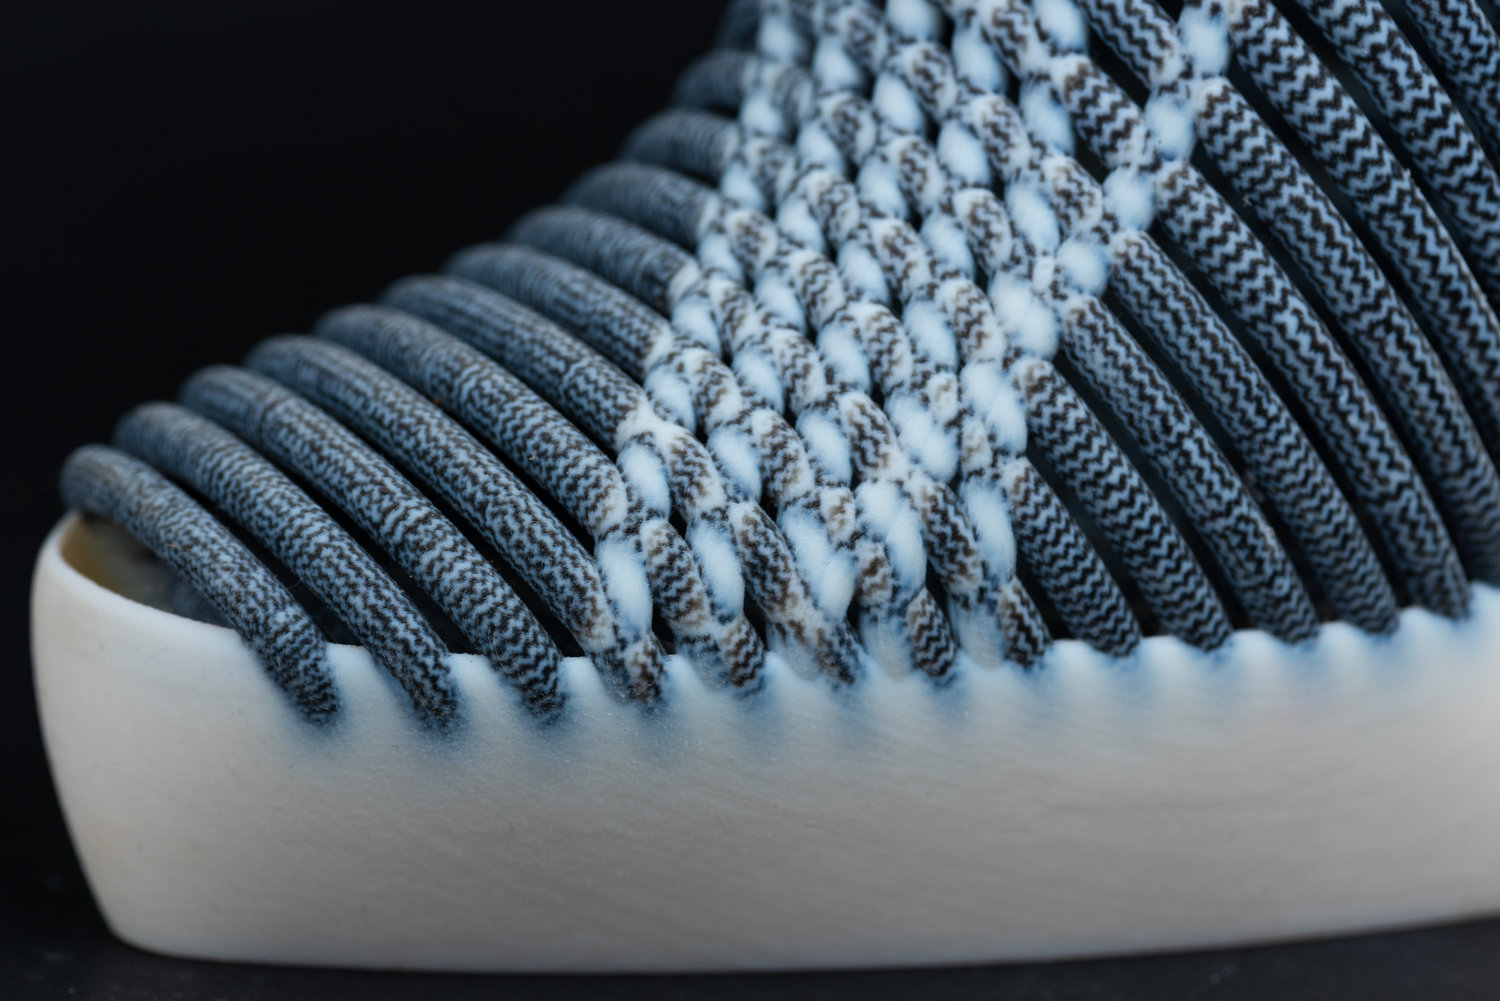 Details of the shoe made by combining 3D printing and ikat weaving. Image via Ganit Goldstein.